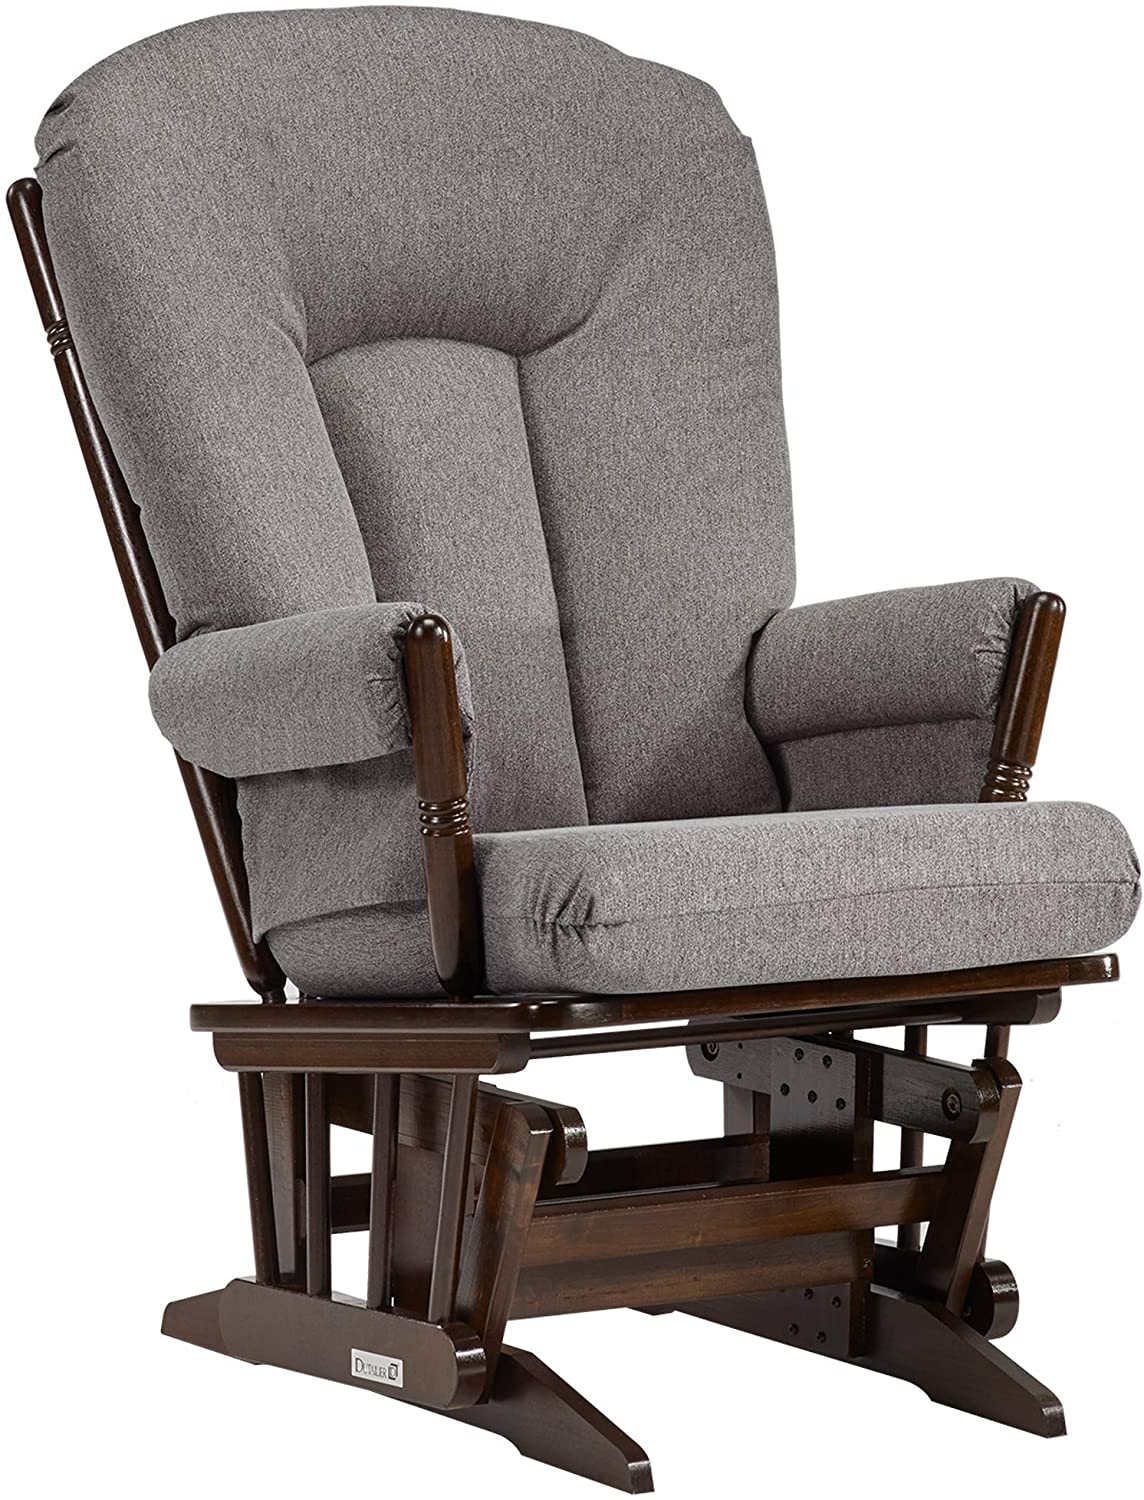 Dutailier Colonial 0422 Glider Chair